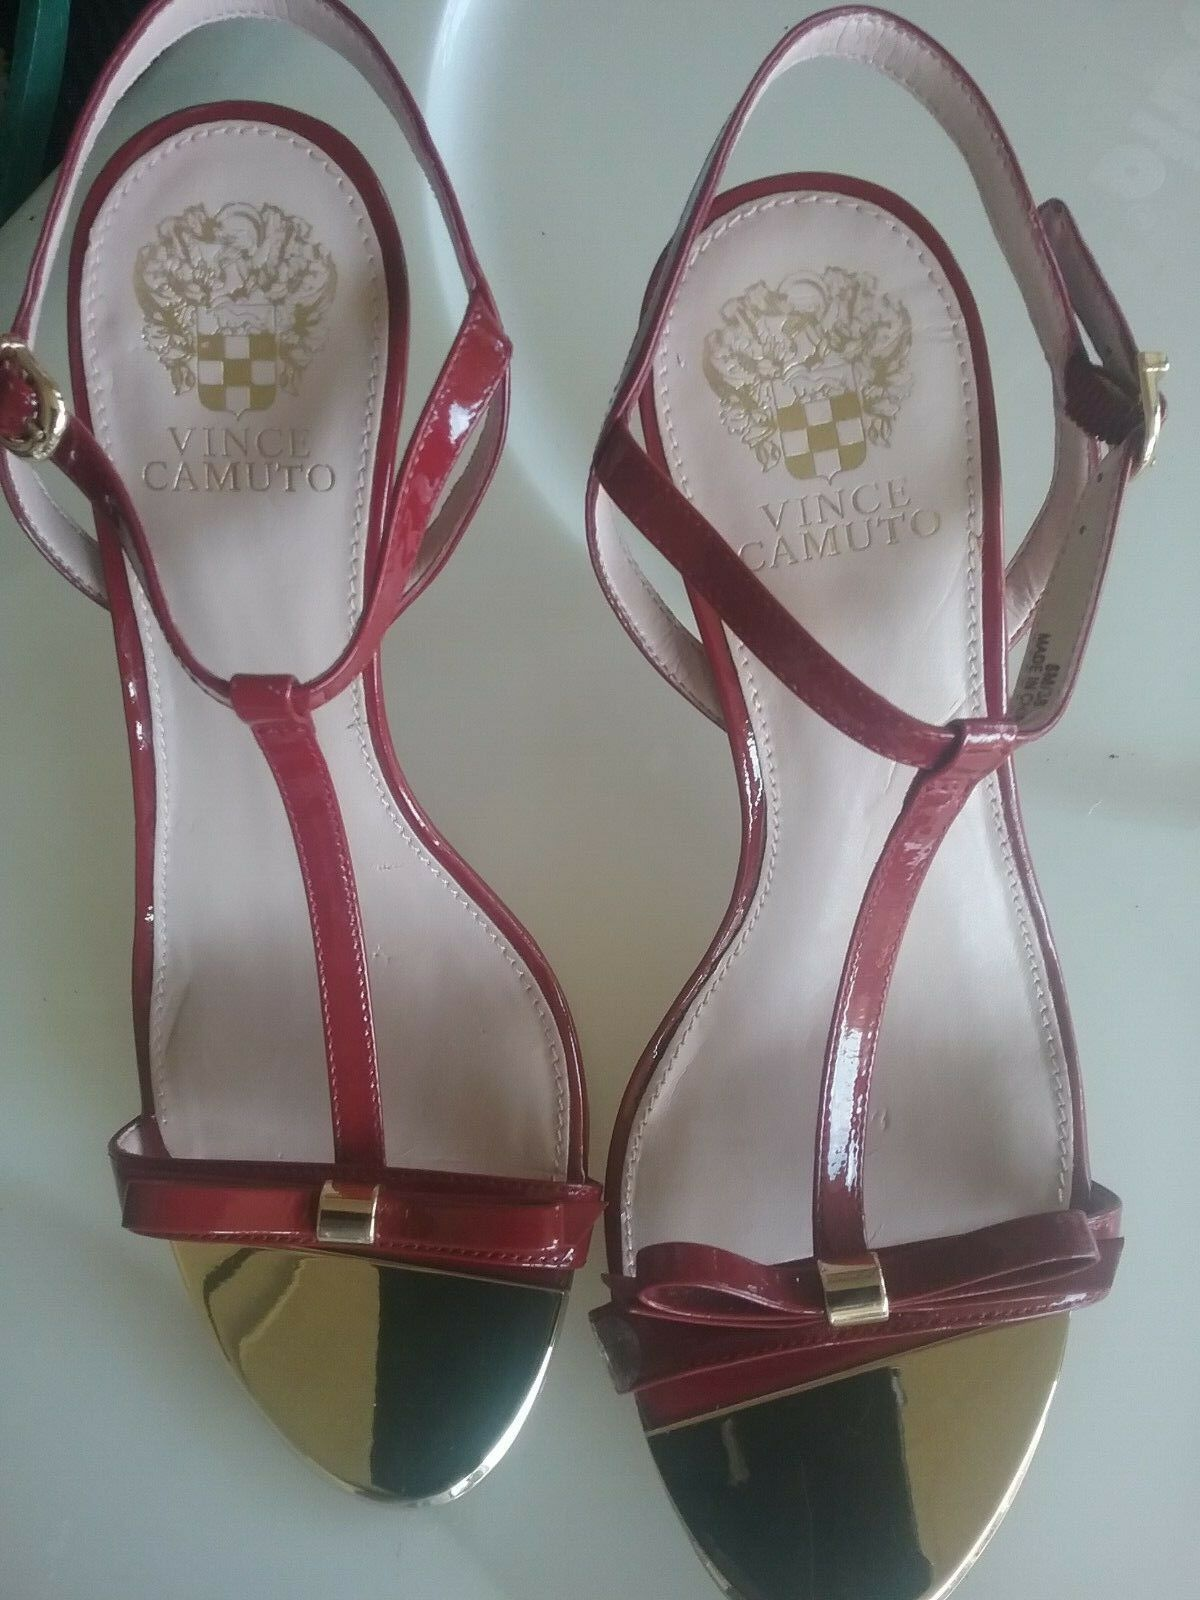 online economico VINCE CAMUTO SPICER rosso rosso rosso PATENT T-STRAP HEEL SANDALS SZ EU 38 US 8M  in linea